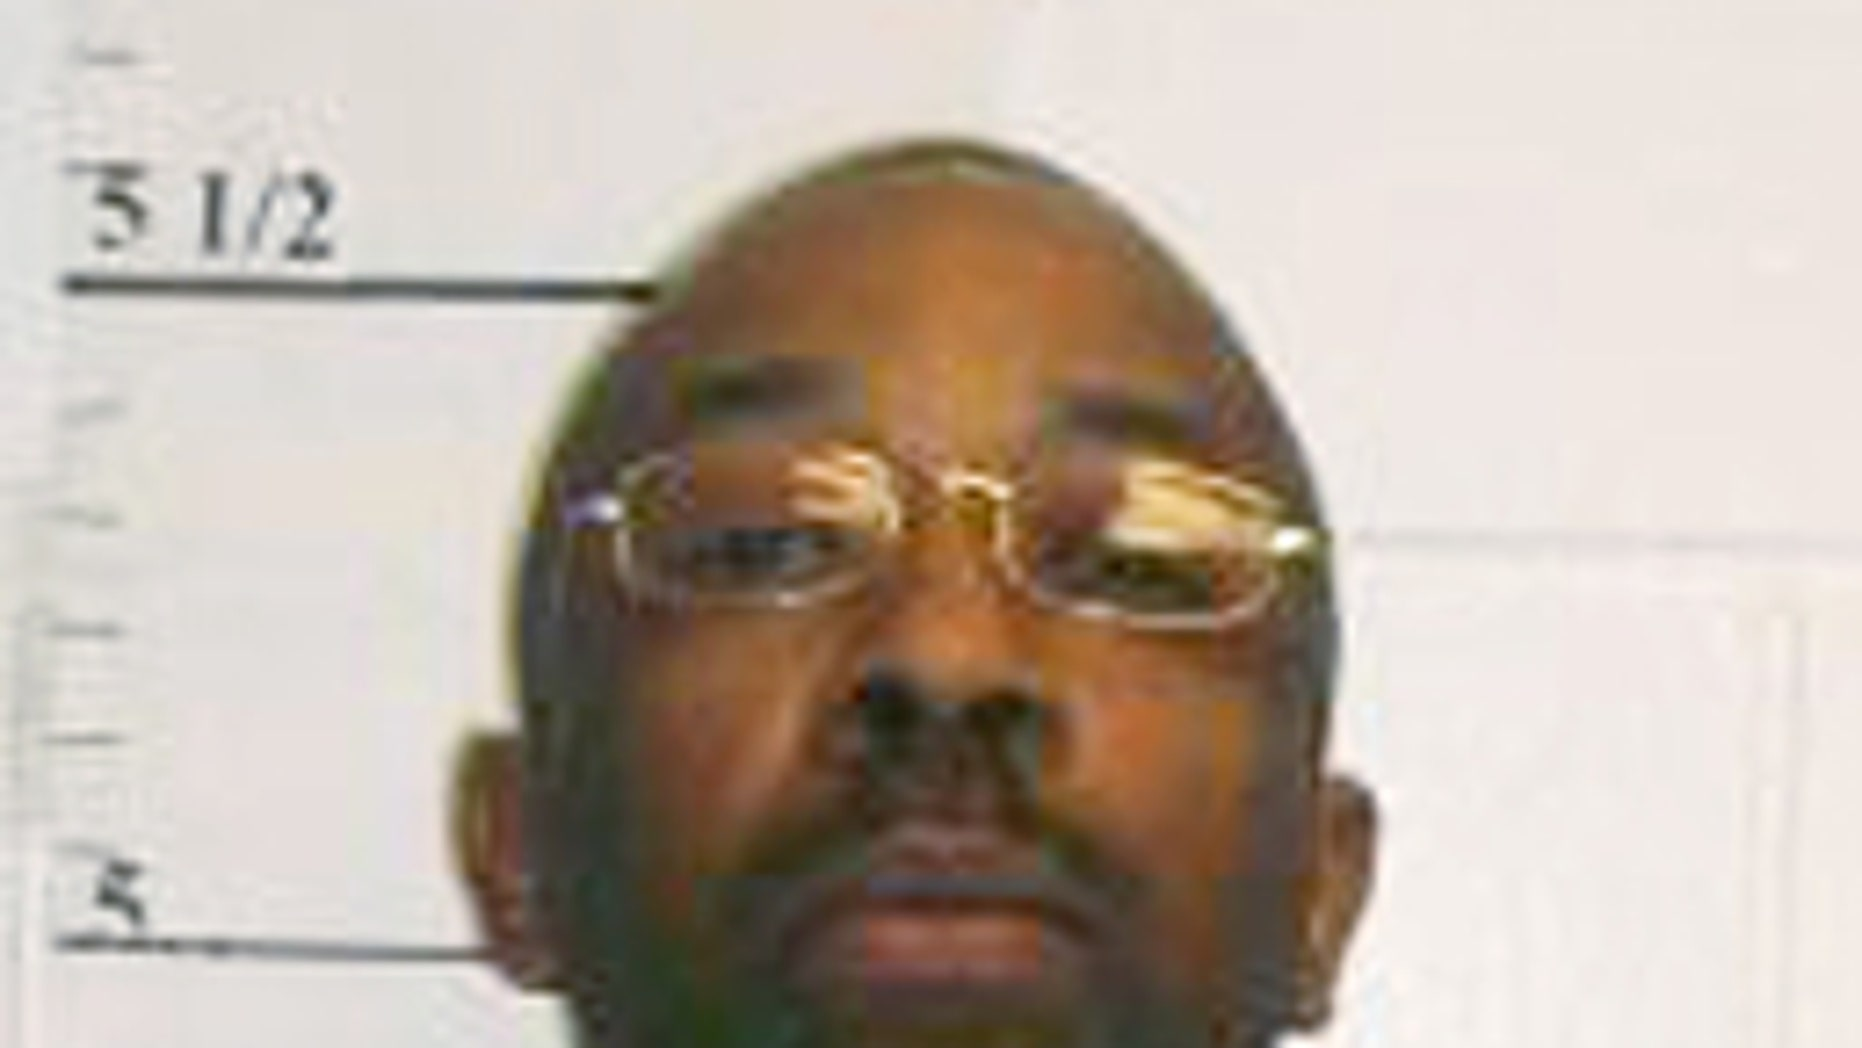 April 22, 2014: This photo provided by the Missouri Department of Corrections shows Roderick Nunley, who was executed Tuesday for raping and killing 15-year-old Ann Harrison in Kansas City in 1989. (Missouri Department of Corrections via AP)